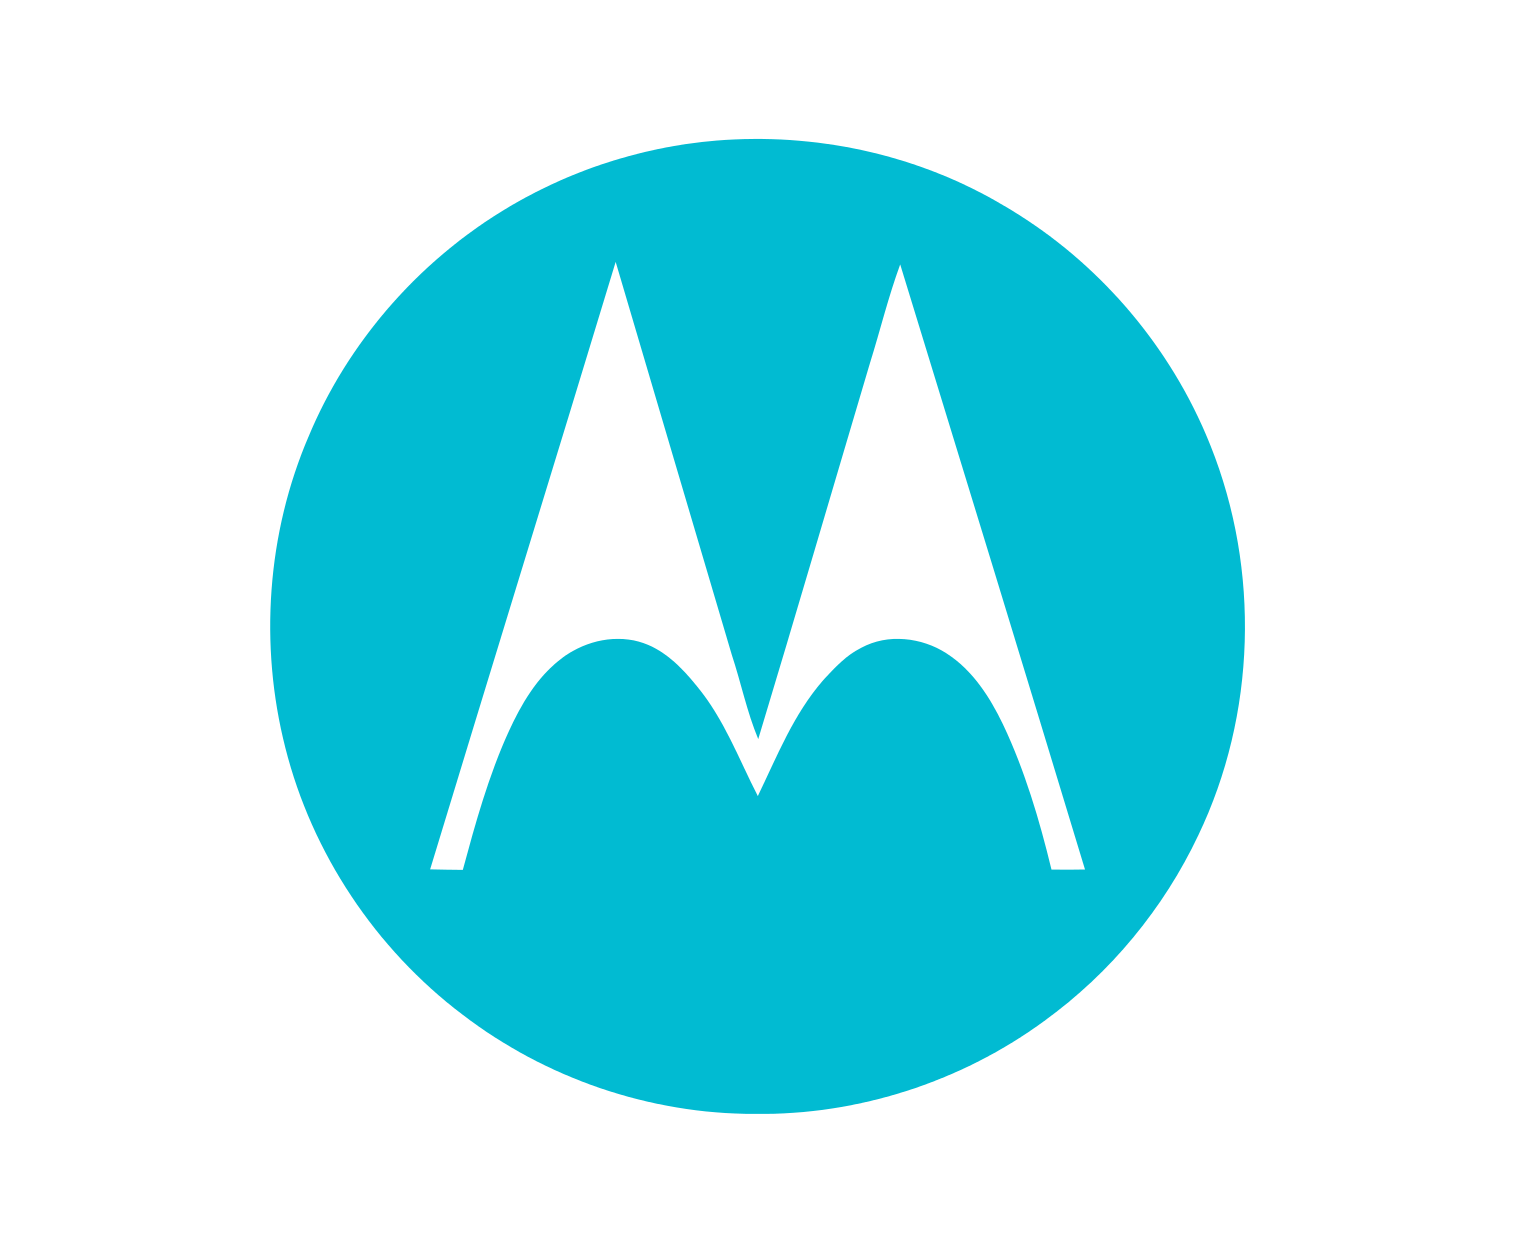 Motorola UK logo